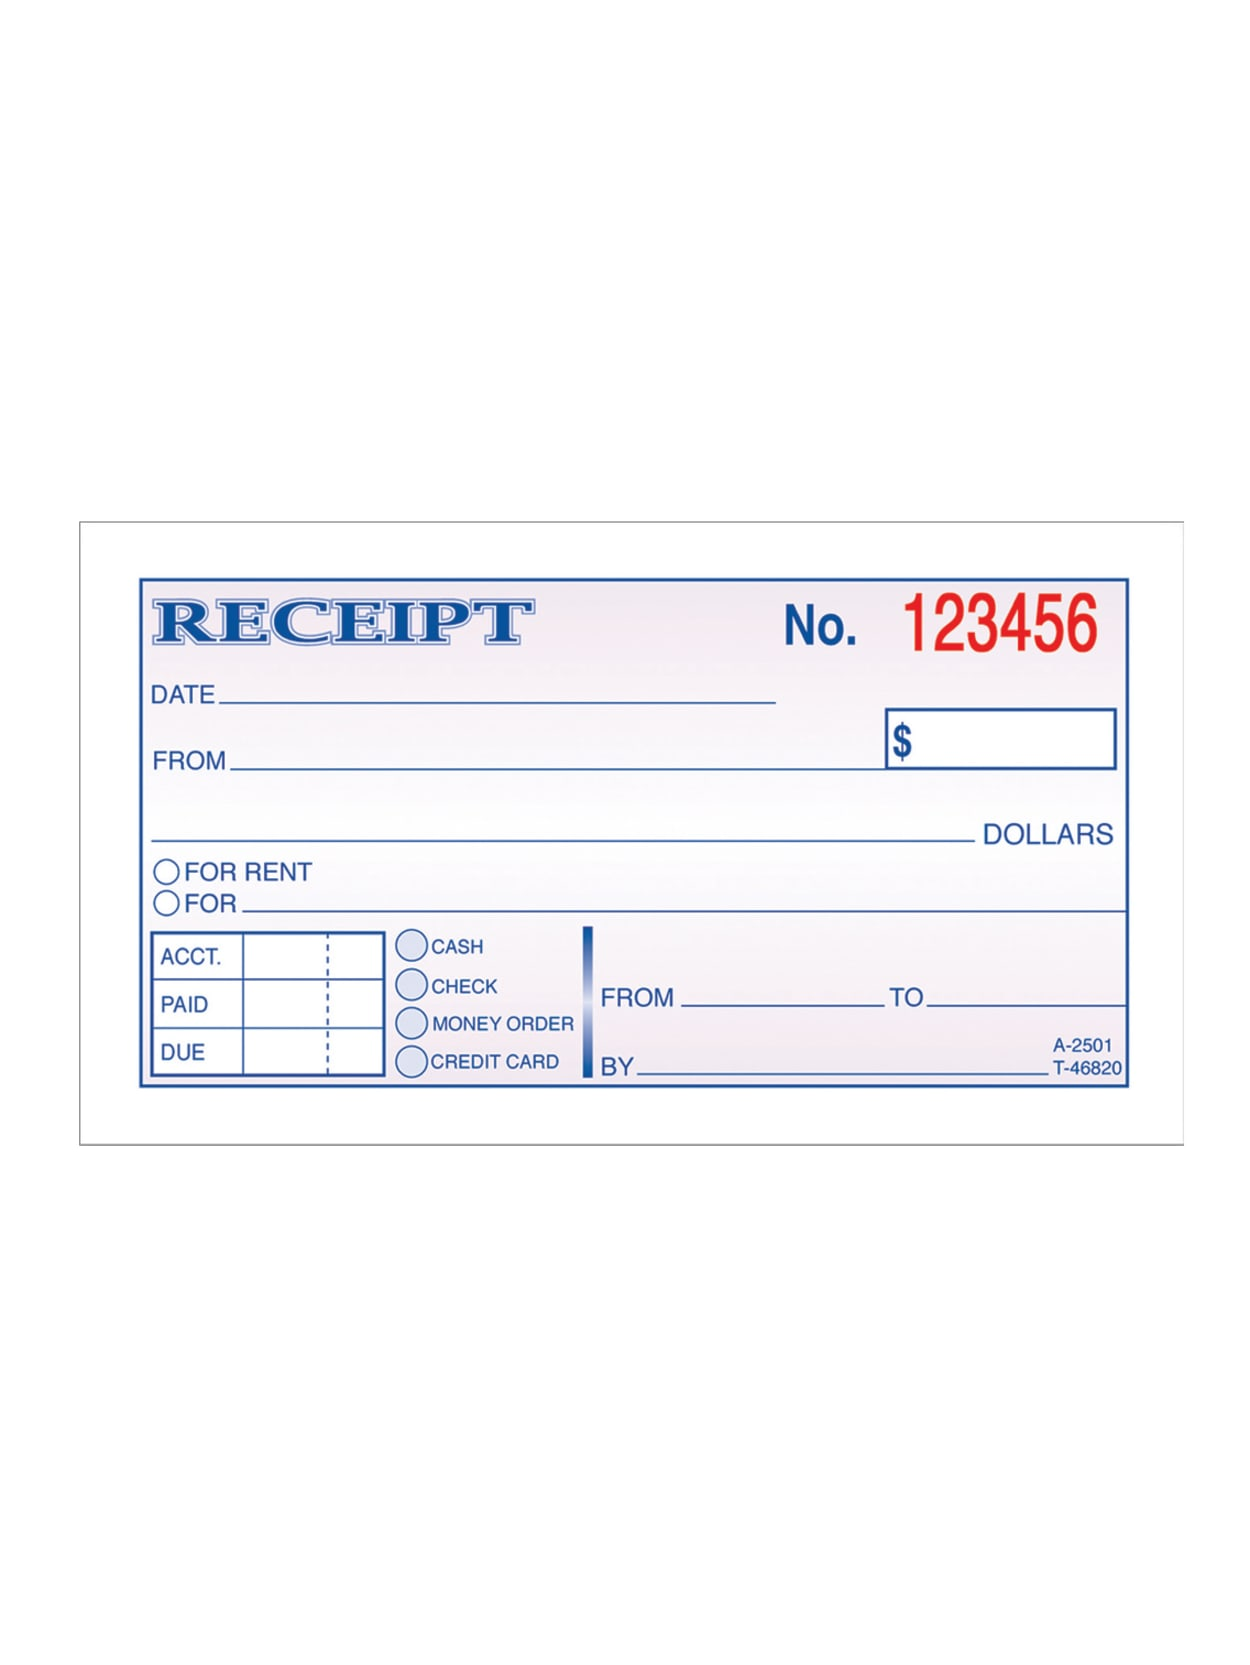 4 Receipts per Page Bound Wraparound Cover 100 Sets per Book 7-5//8 x 10-7//8 TC1182-5 Money and Rent Receipt Books 5 Books per Pack #.01Pack 3-Part Carbonless